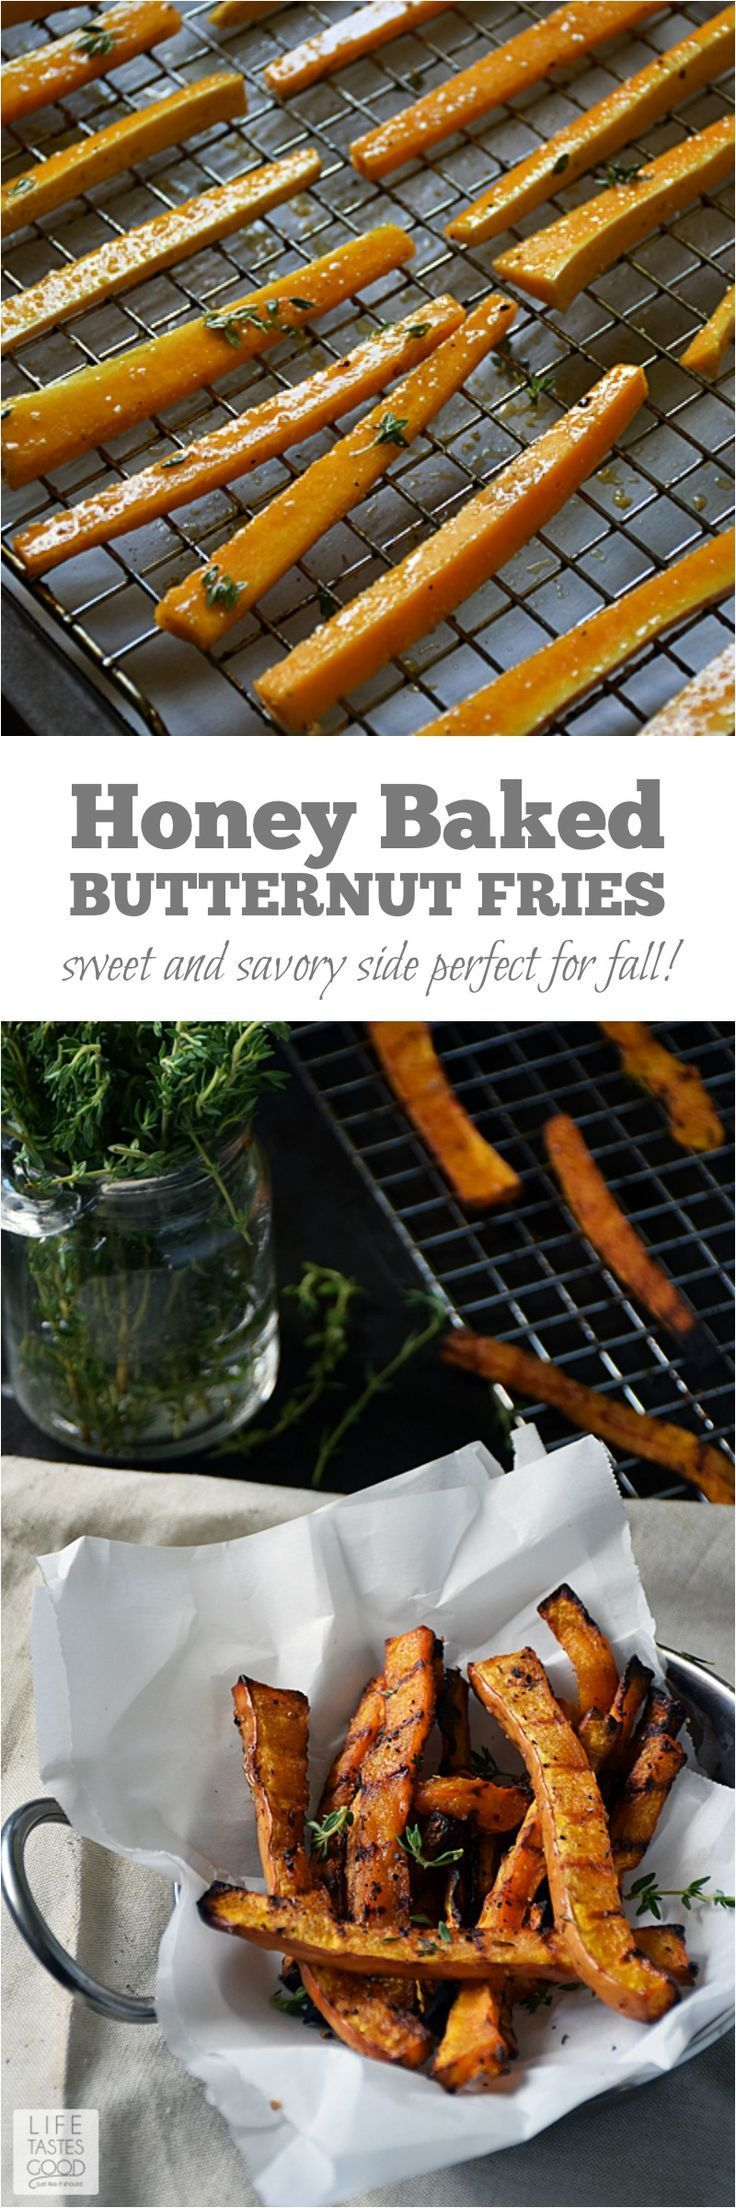 Honey Baked Butternut Squash Fries | by Life Tastes Good are a sweet and savory side dish perfect for fall! The subtle honey flavor combined with the sweet, nuttiness of butternut squash and a touch of thyme for that savory flare, will have you begging for more! #ad #LTGrecipes #TLHoneyGranulesCG /tatelylesugarus/